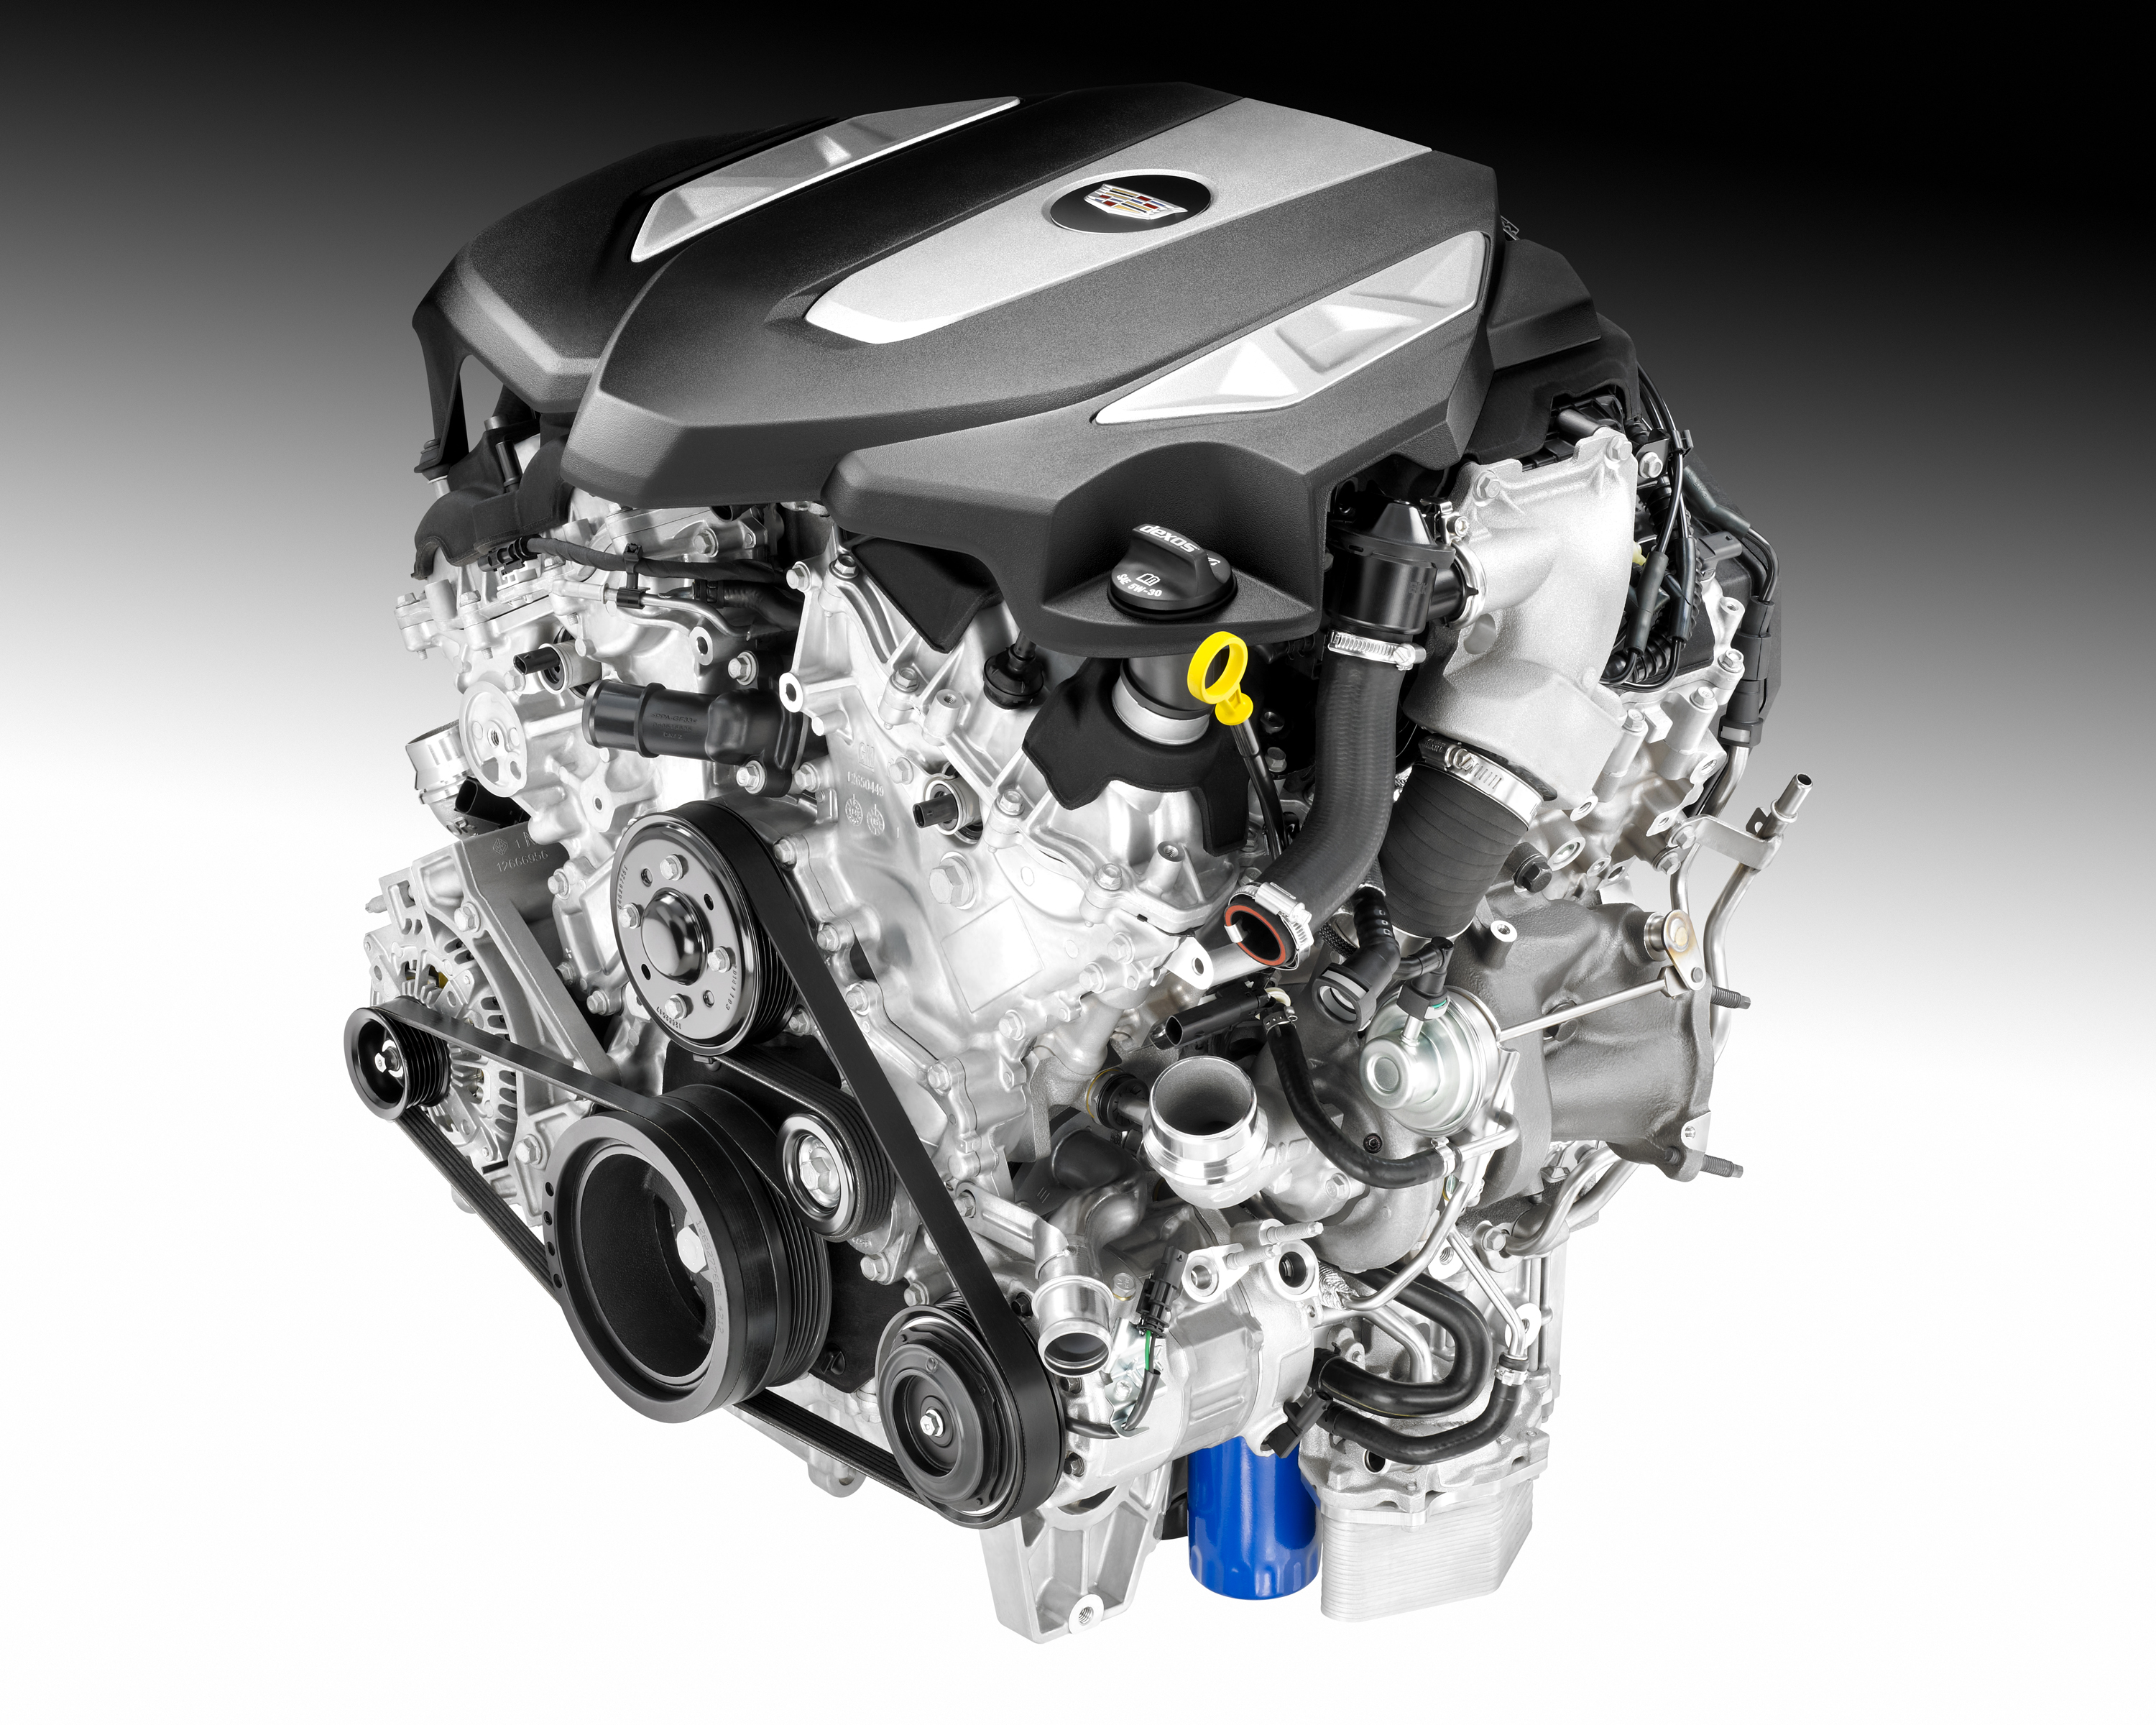 Cadillac Next Gen V 6 Engines Led By 3 0l Twin Turbo